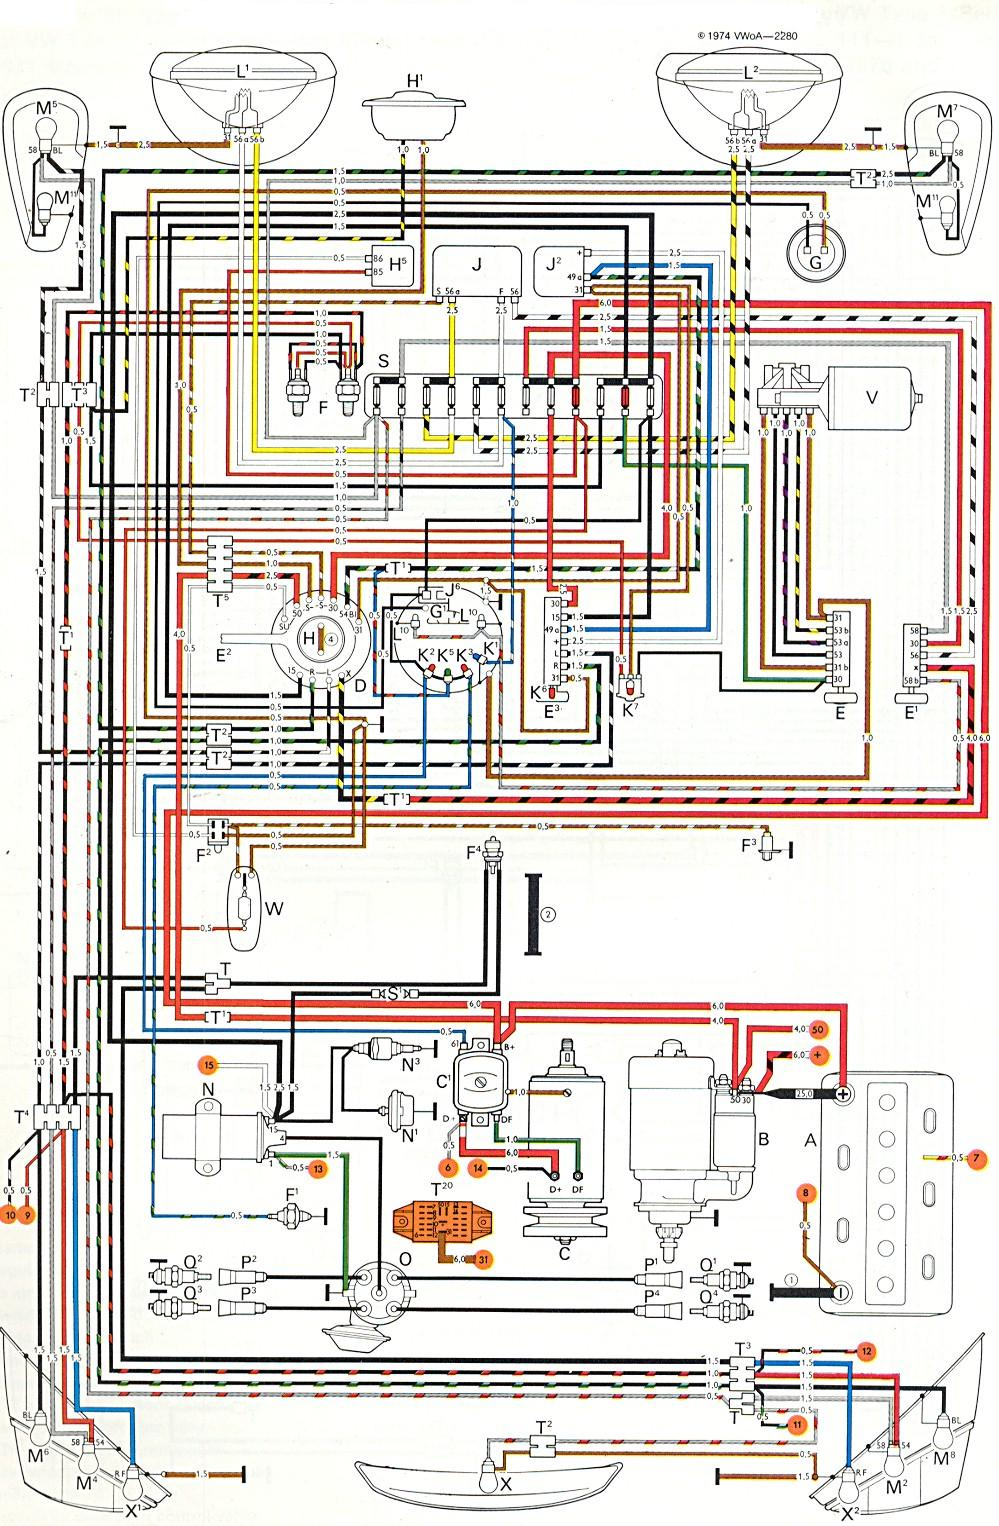 [NRIO_4796]   1972 Vw Beetle Wire Schematic Caleffi Zone Valve Wiring Diagram -  evo.1995.the-rocks.it | Vw Beetle Schematic |  | Bege Wiring Diagram Source Full Edition